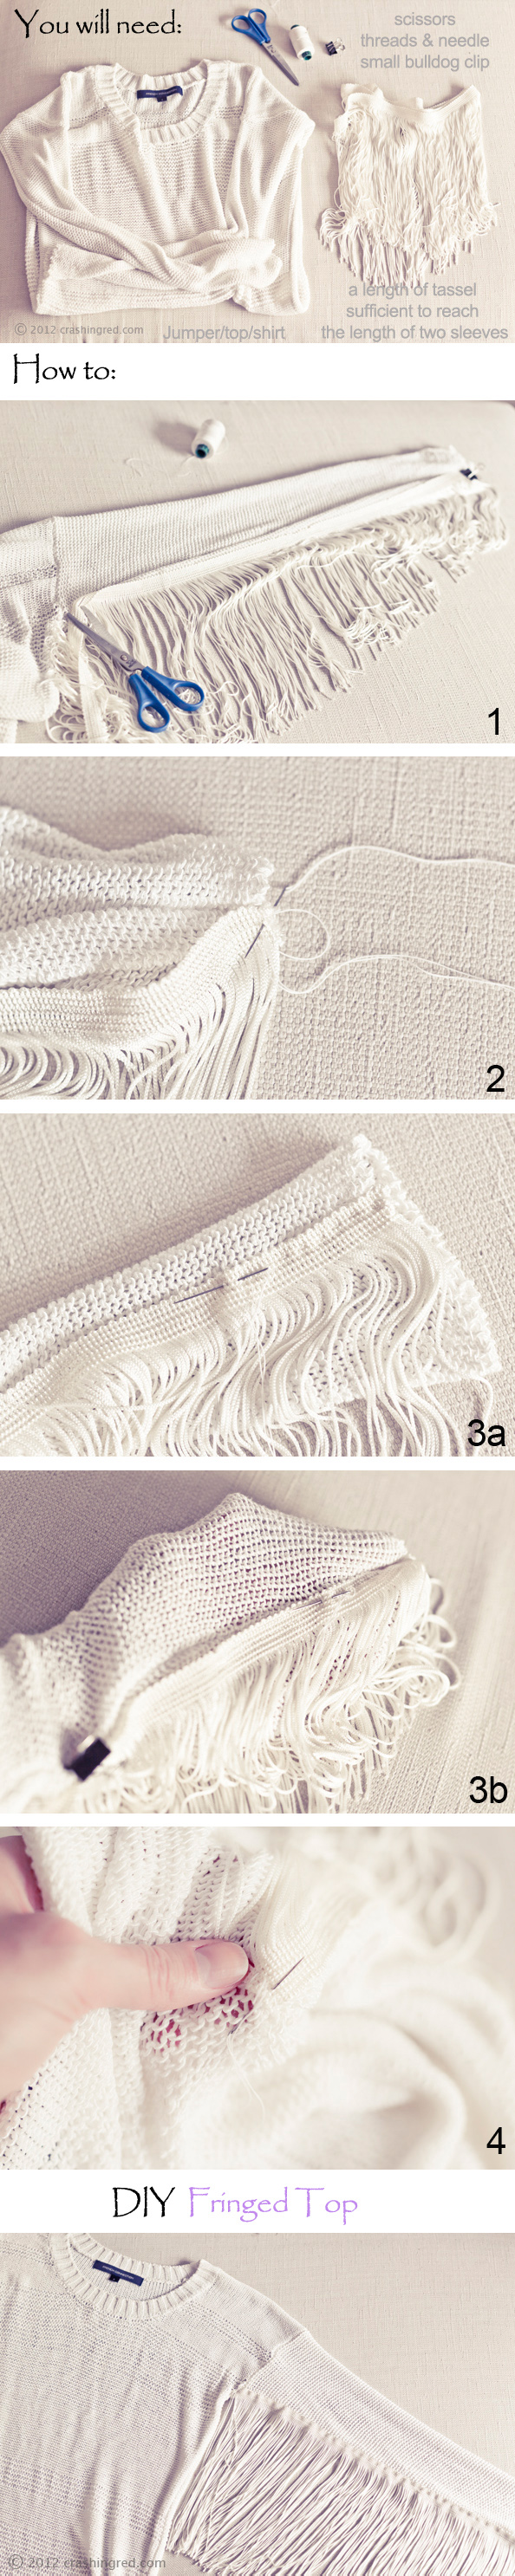 DIY fringed top how to tut